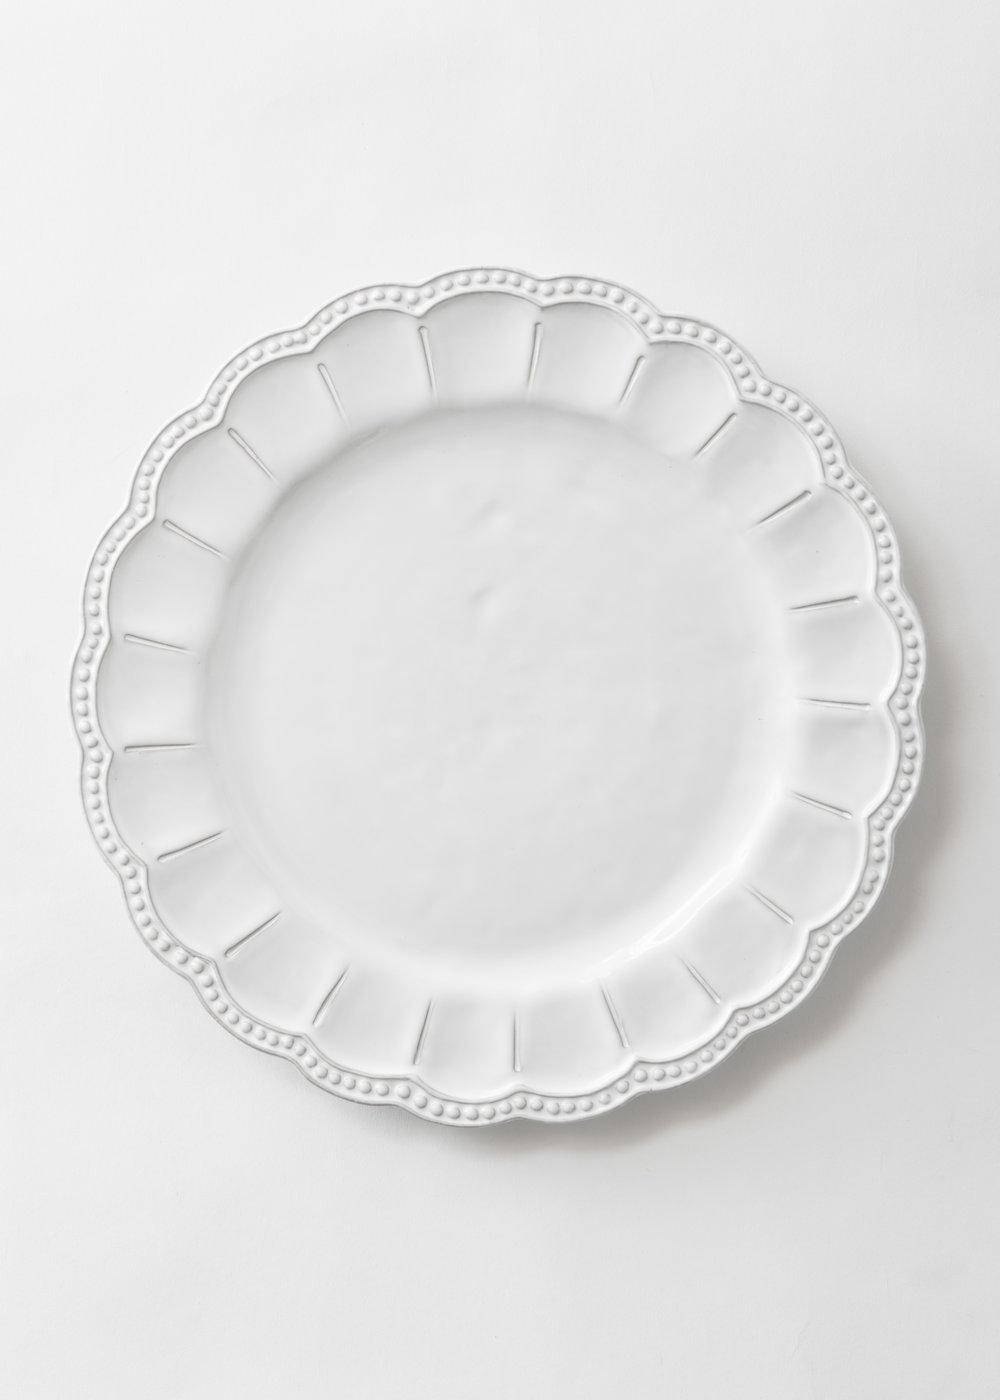 White_Collection_Charger_Plate.jpg